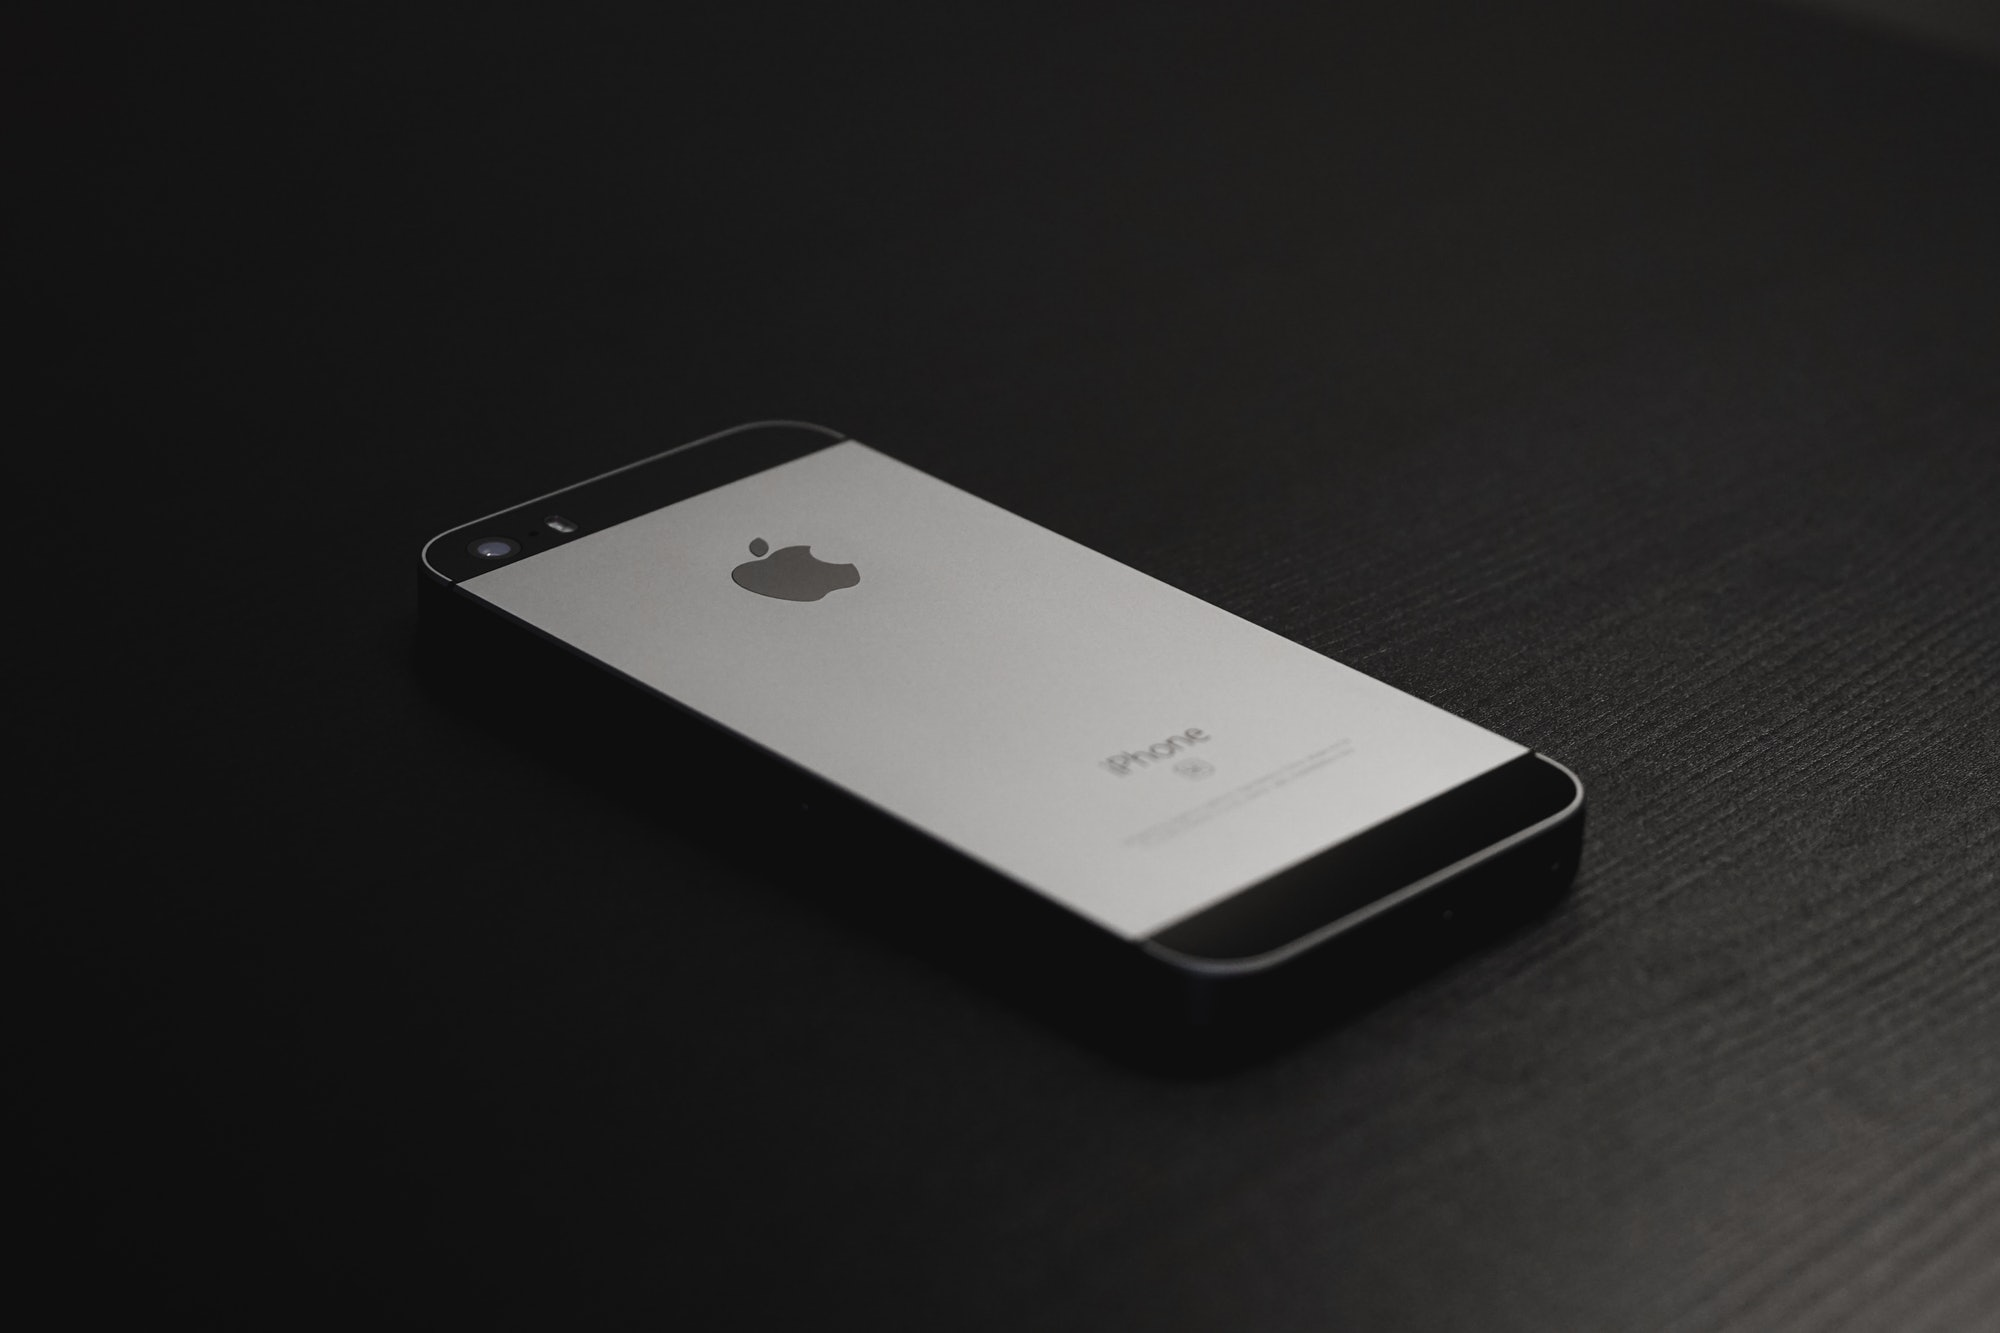 The iPhone 5S was the world's first 64-bit smartphone.